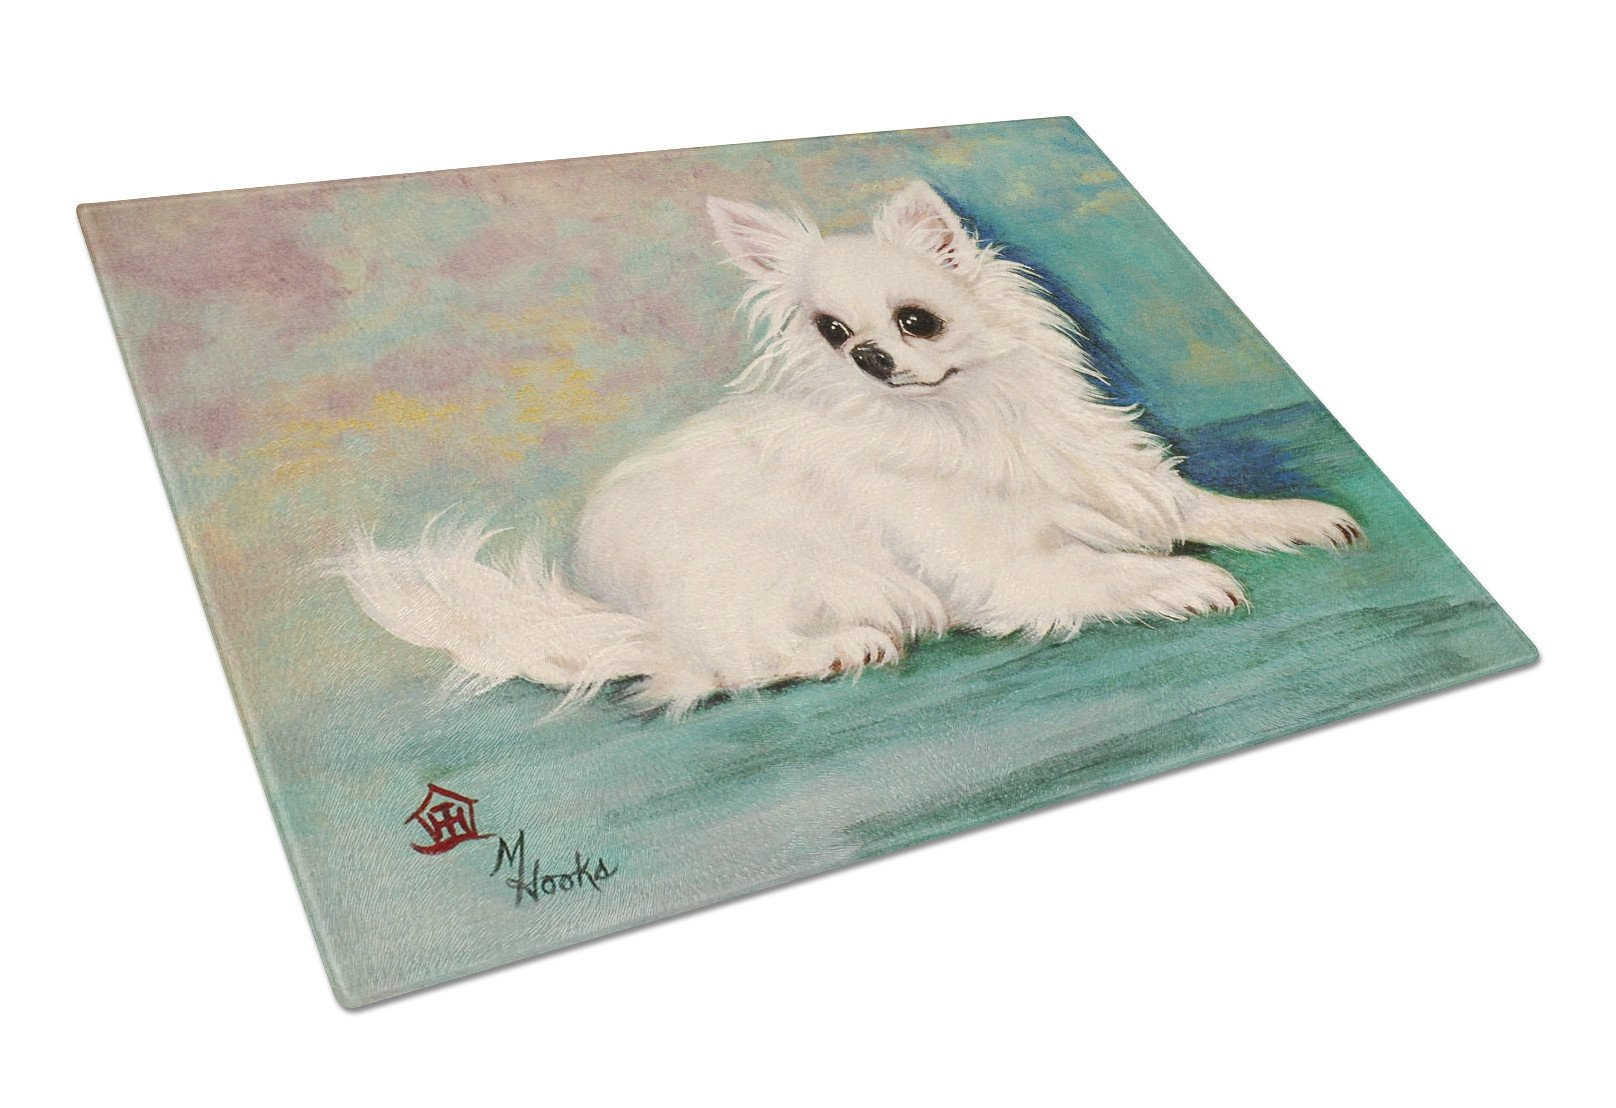 Chihuahua Queen Mother Glass Cutting Board Large MH1057LCB by Caroline's Treasures